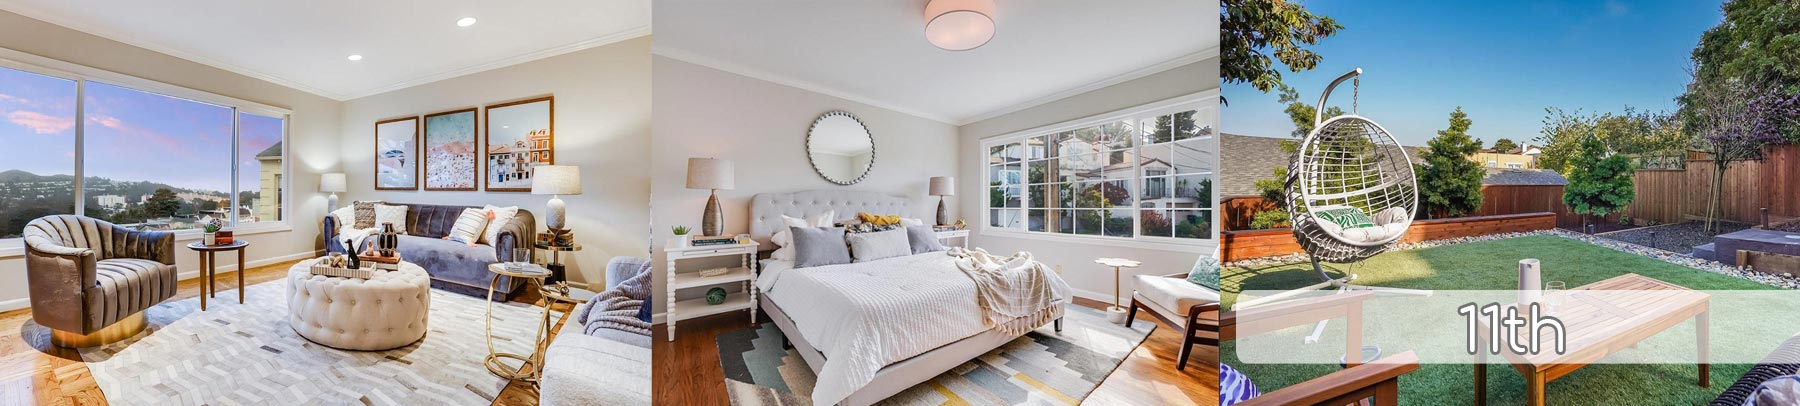 11th Avenue staging project